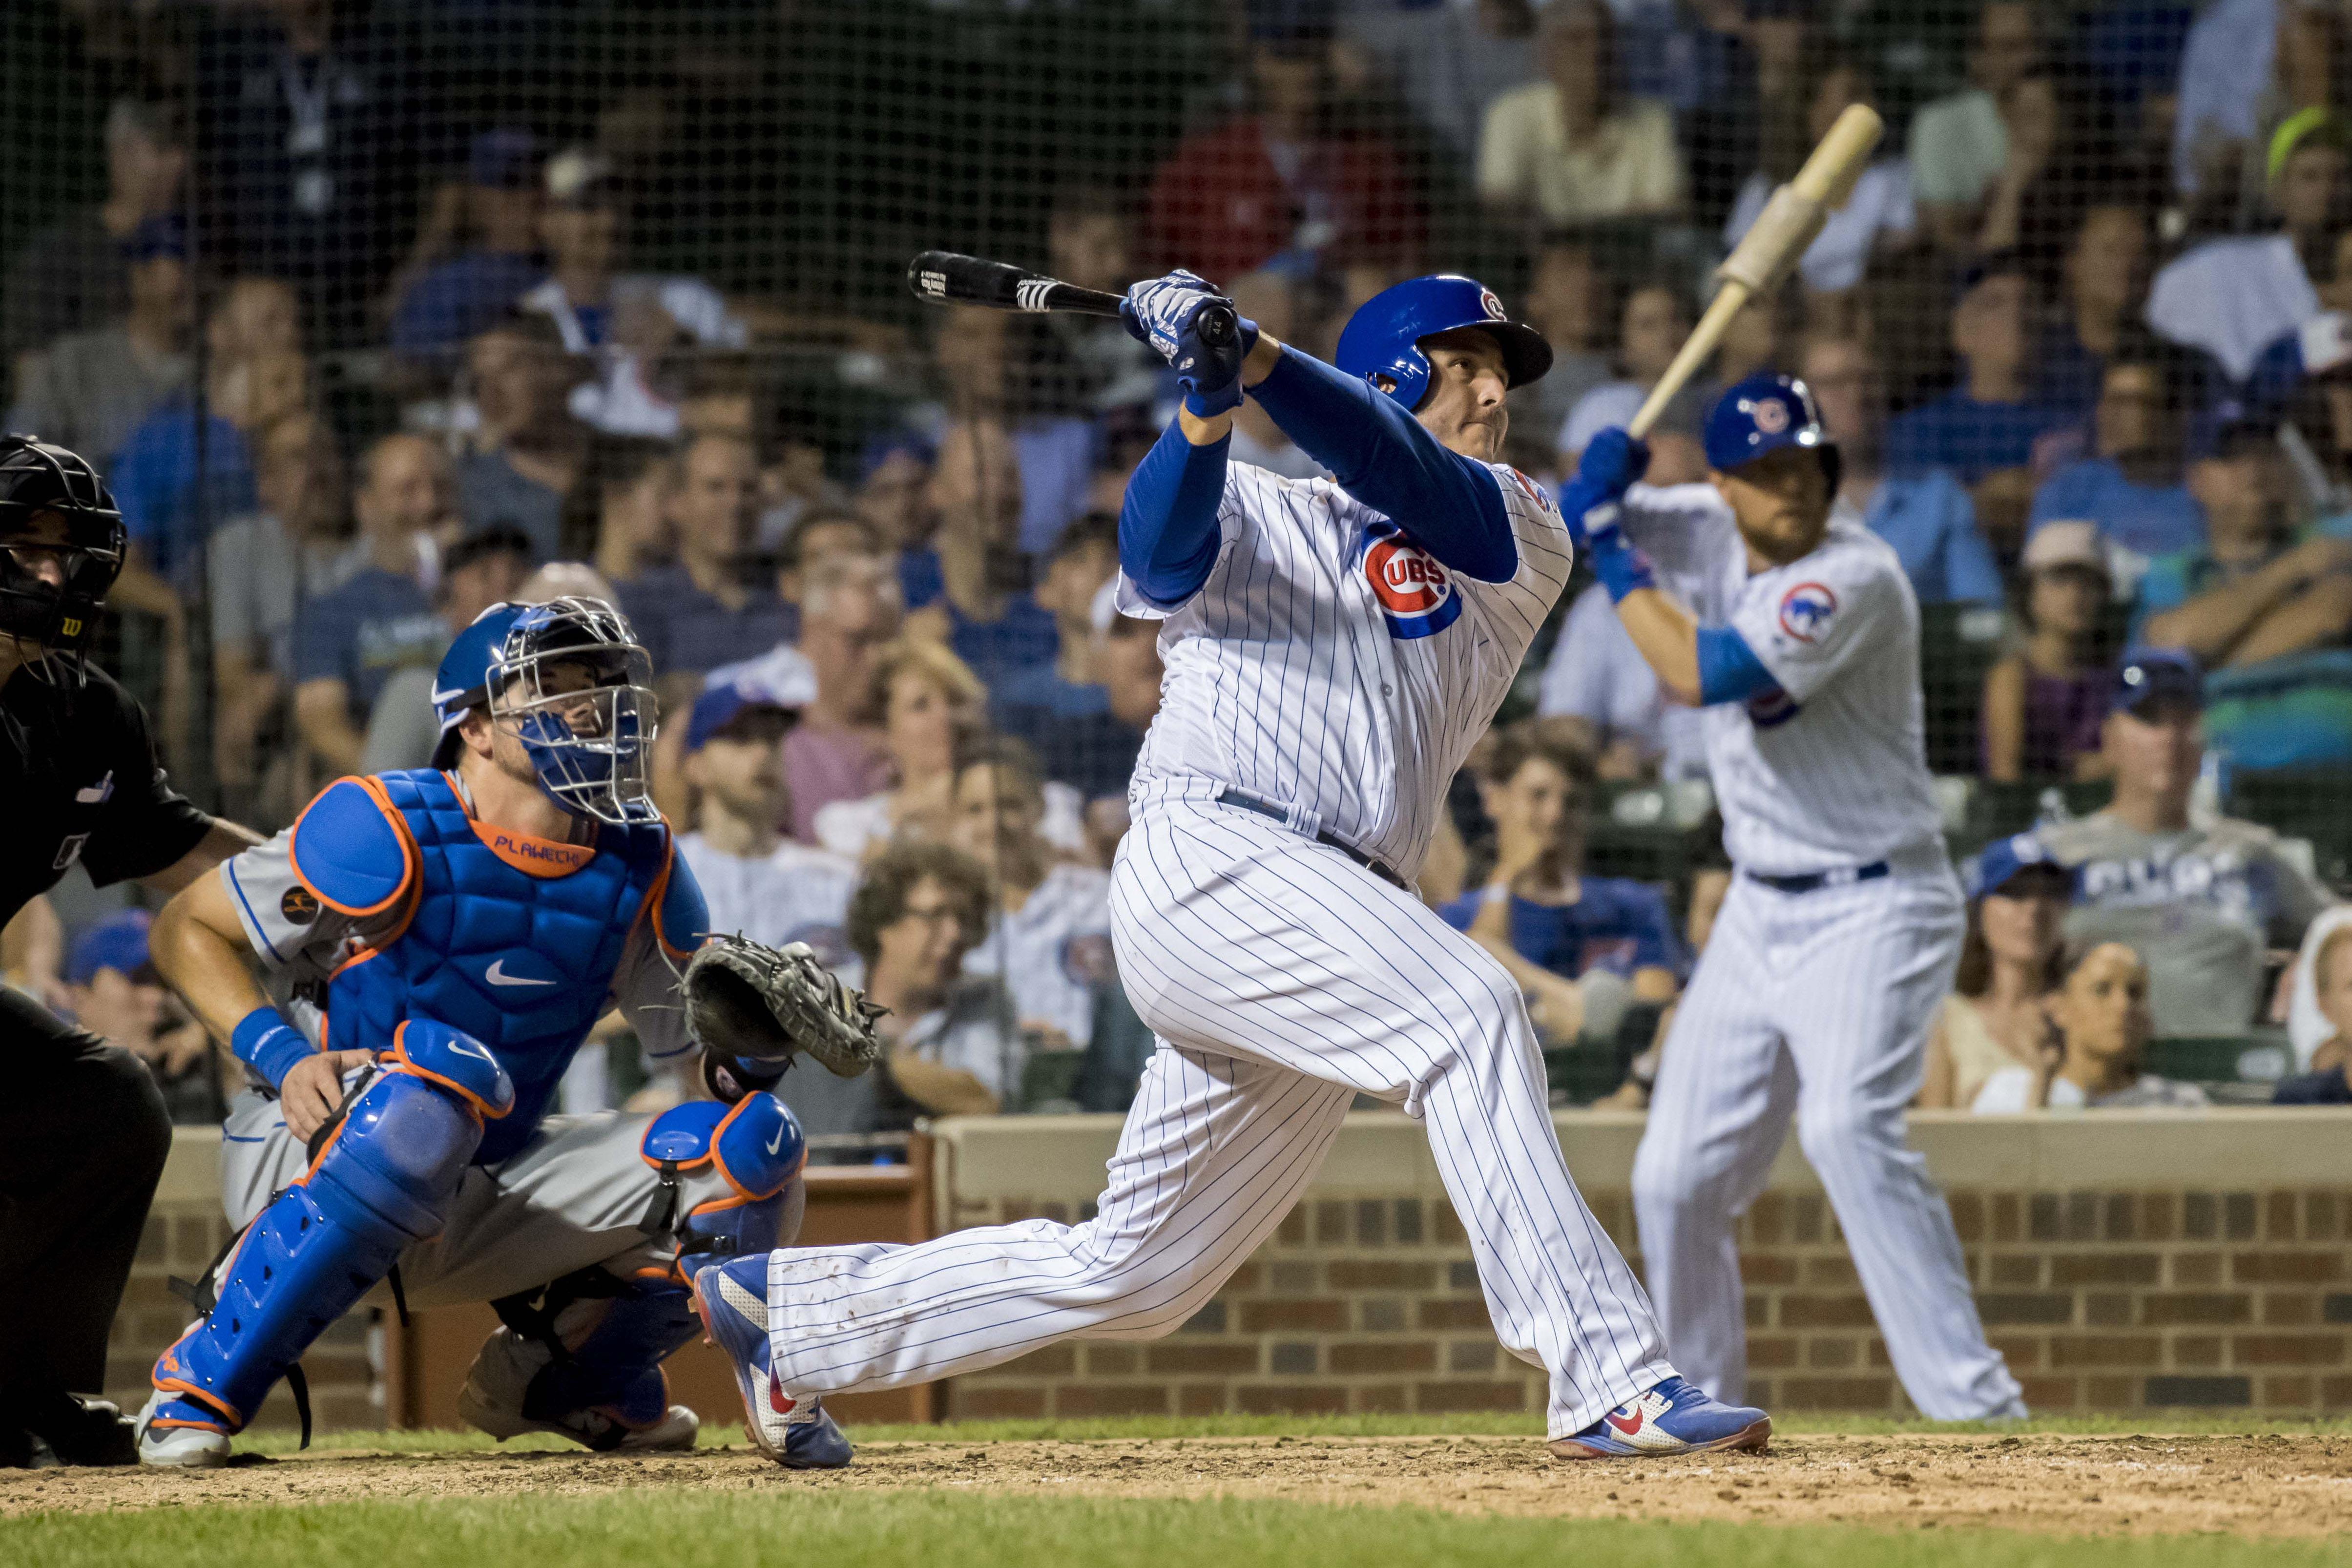 Anthony Rizzo hit the foul ball into the stands before helping the Cubs to a 7-4 win